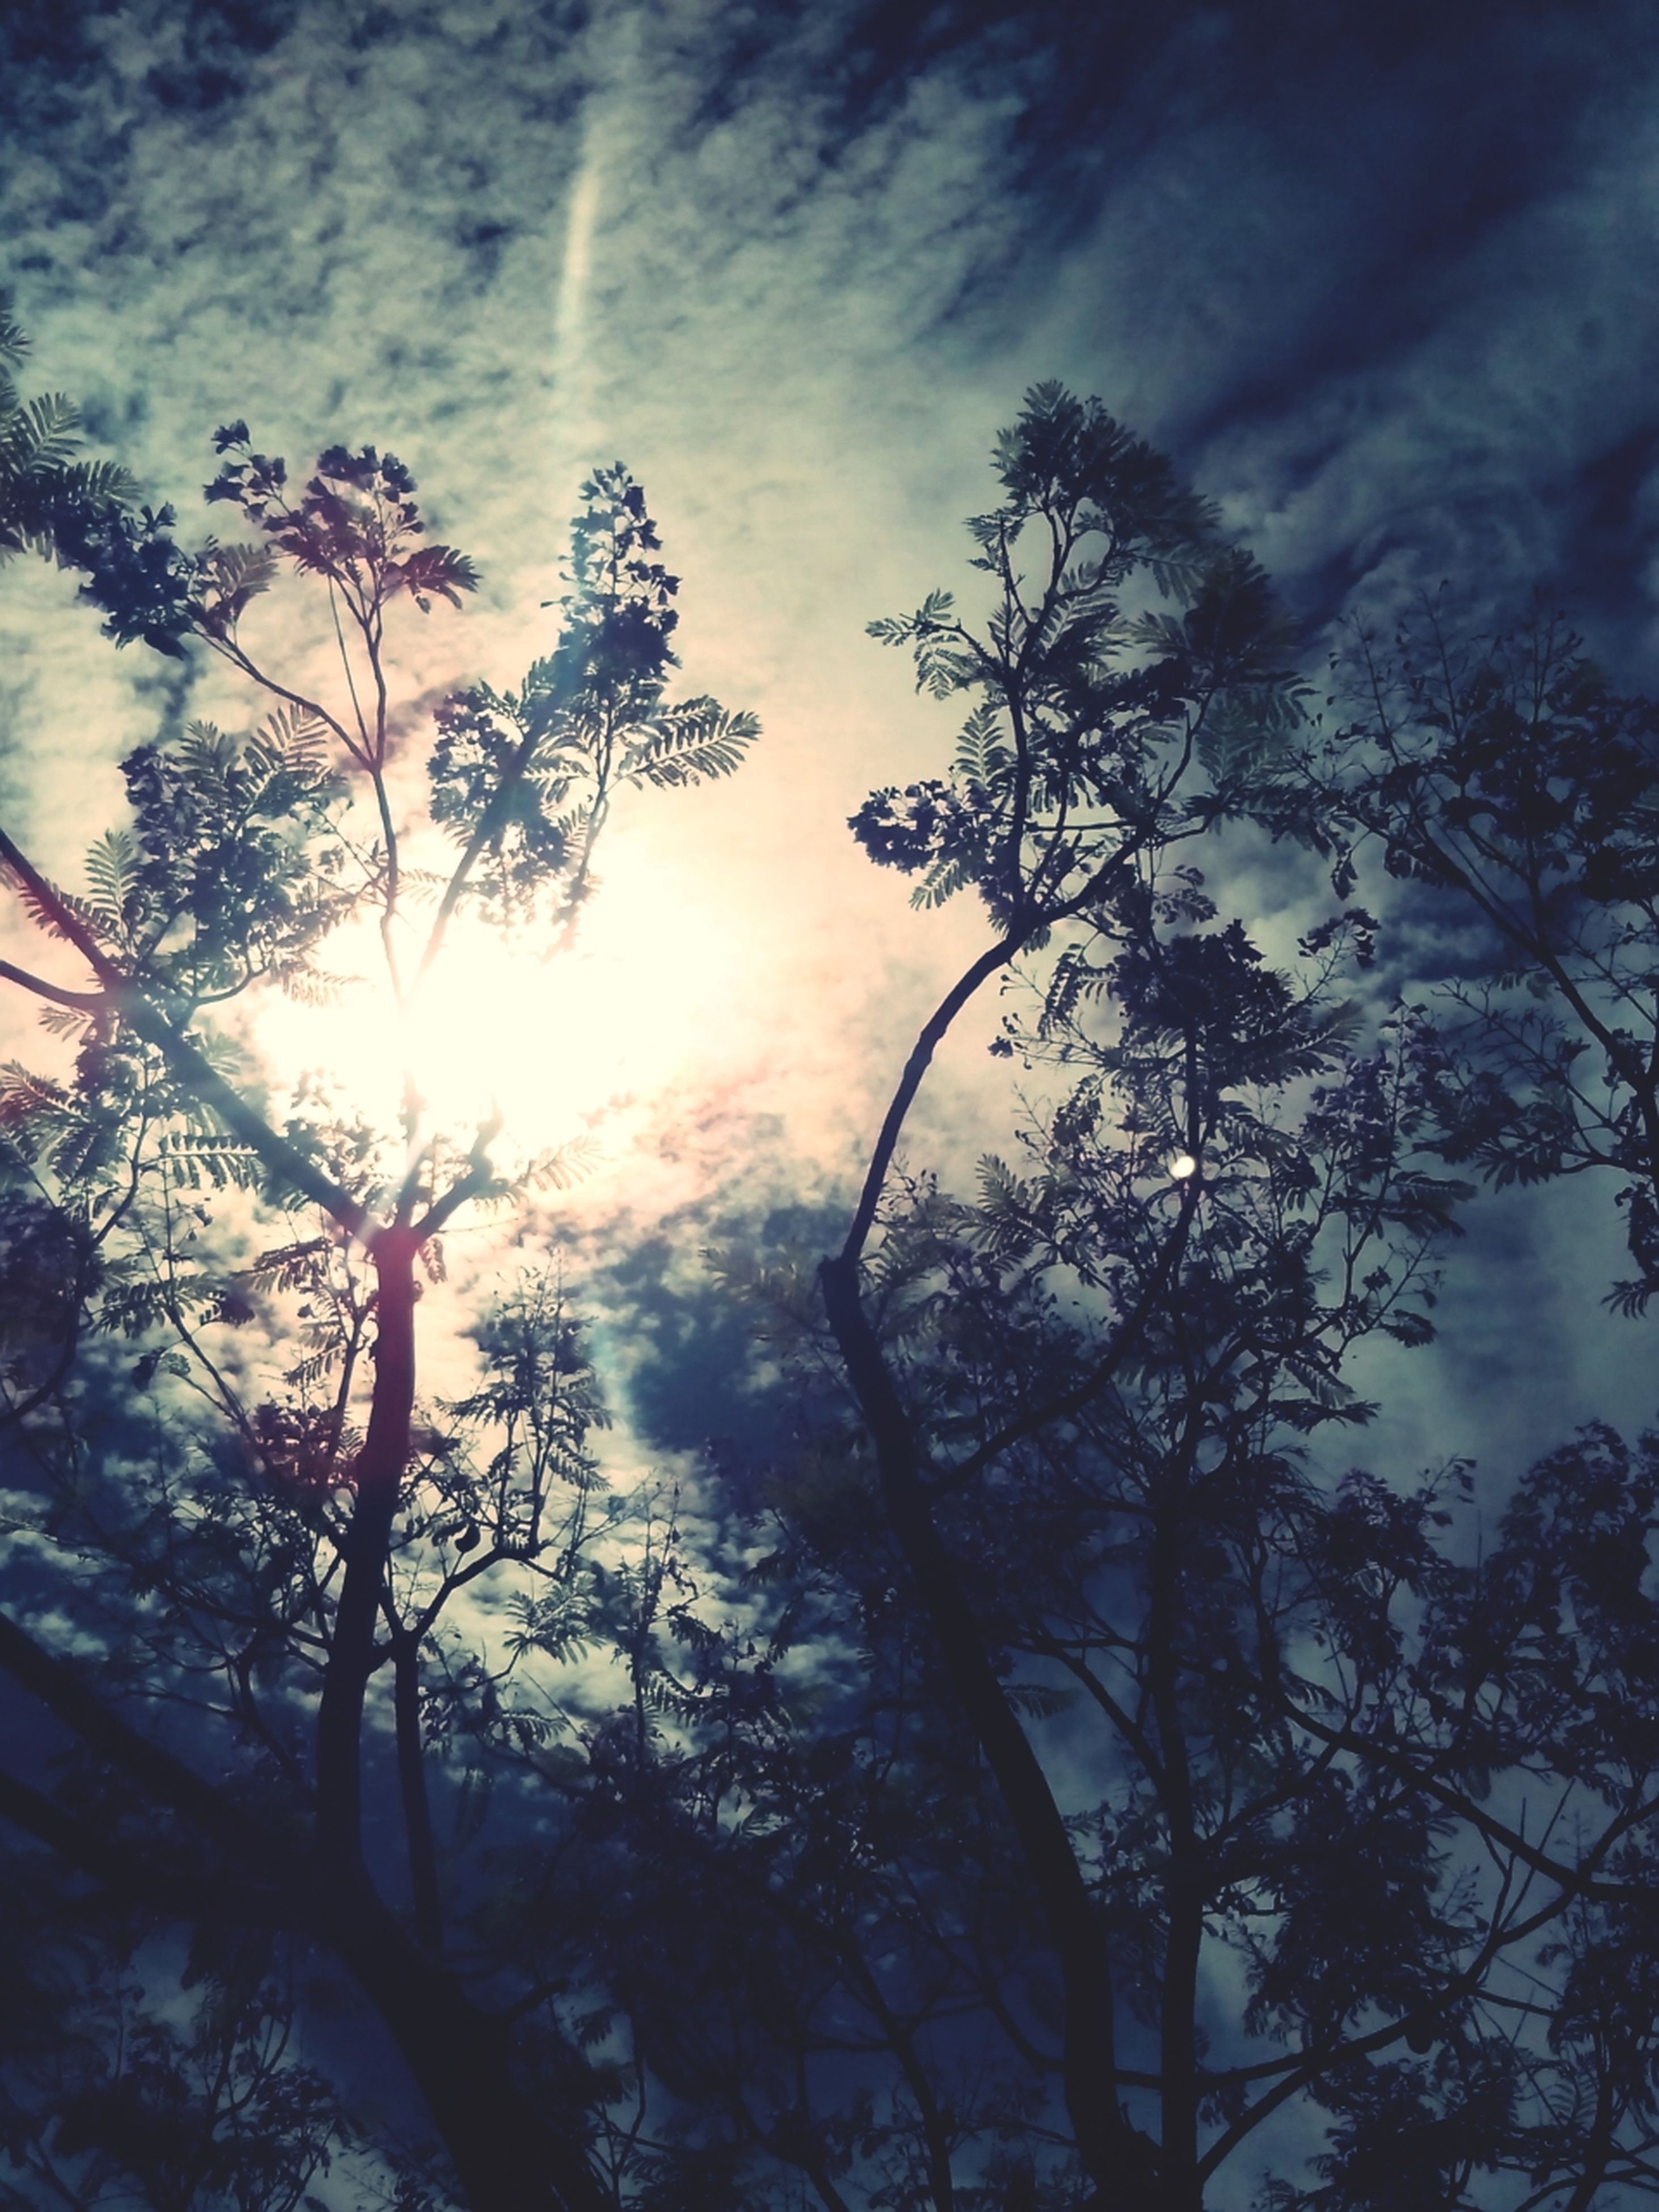 tree, low angle view, sky, sun, cloud - sky, branch, silhouette, beauty in nature, tranquility, nature, growth, sunbeam, scenics, cloudy, sunlight, tranquil scene, sunset, cloud, lens flare, outdoors